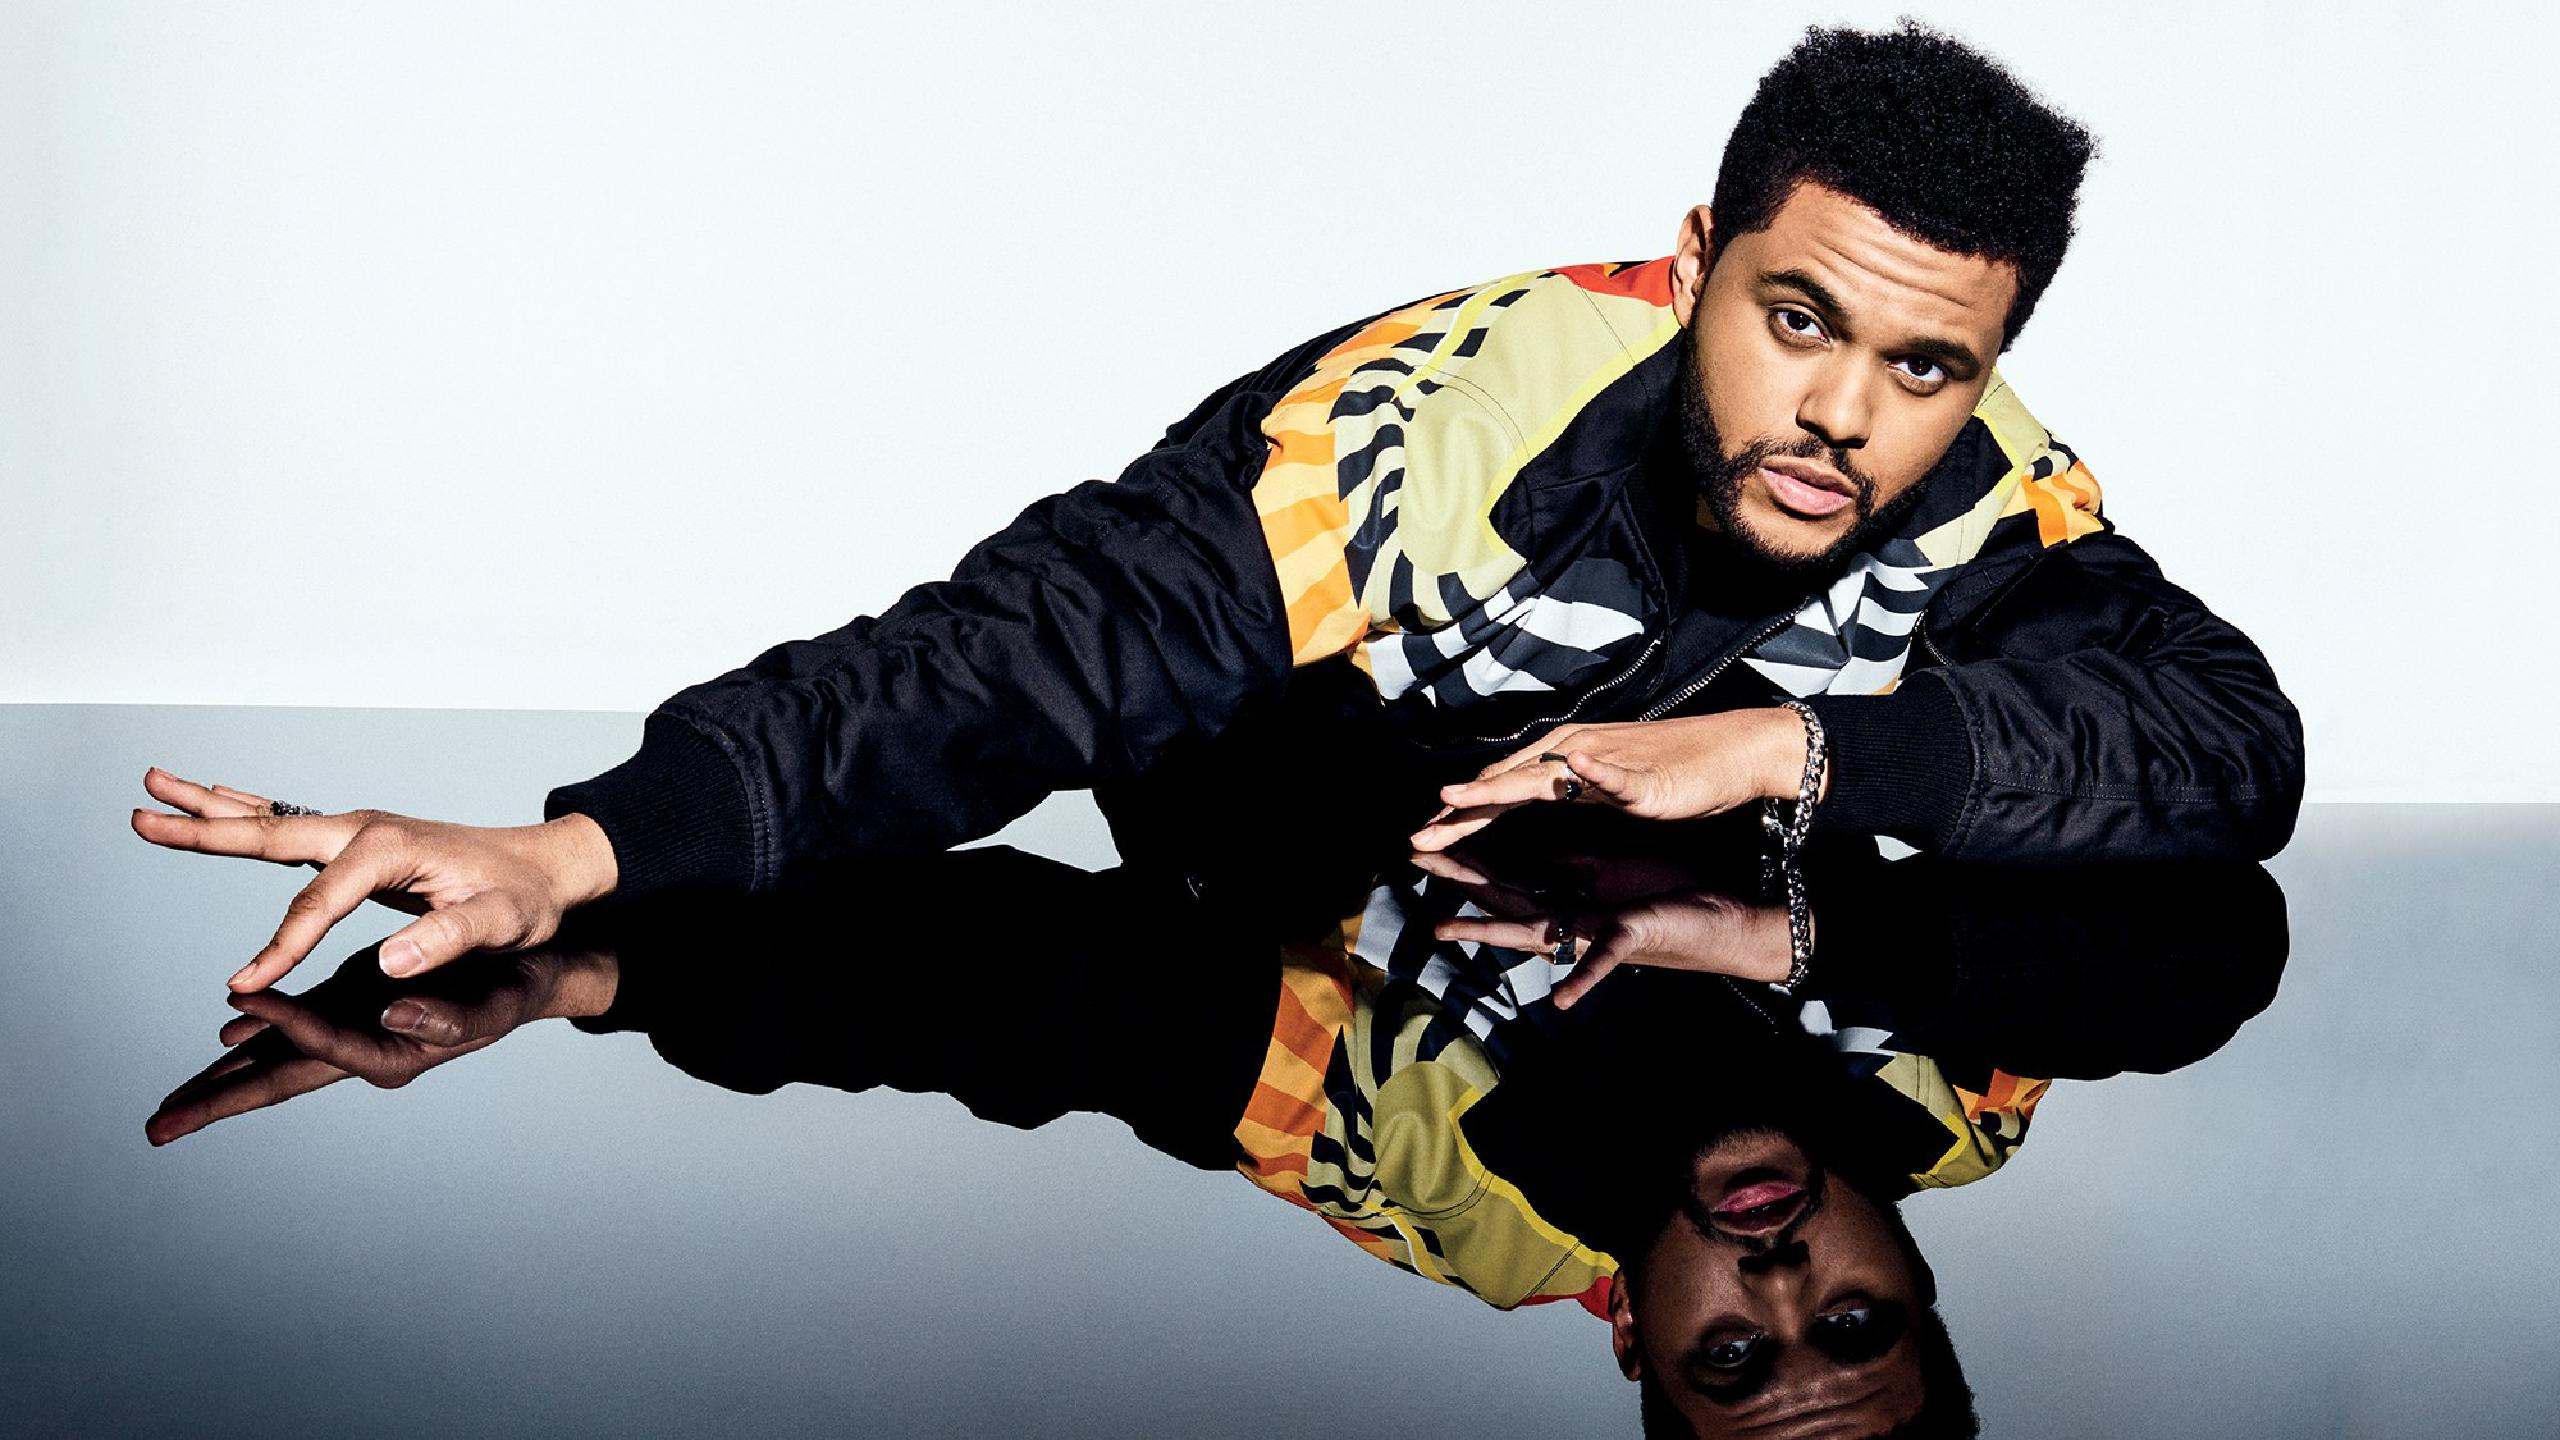 Weeknd Tour Dates 2020 The Weeknd tour dates 2019 2020. The Weeknd tickets and concerts